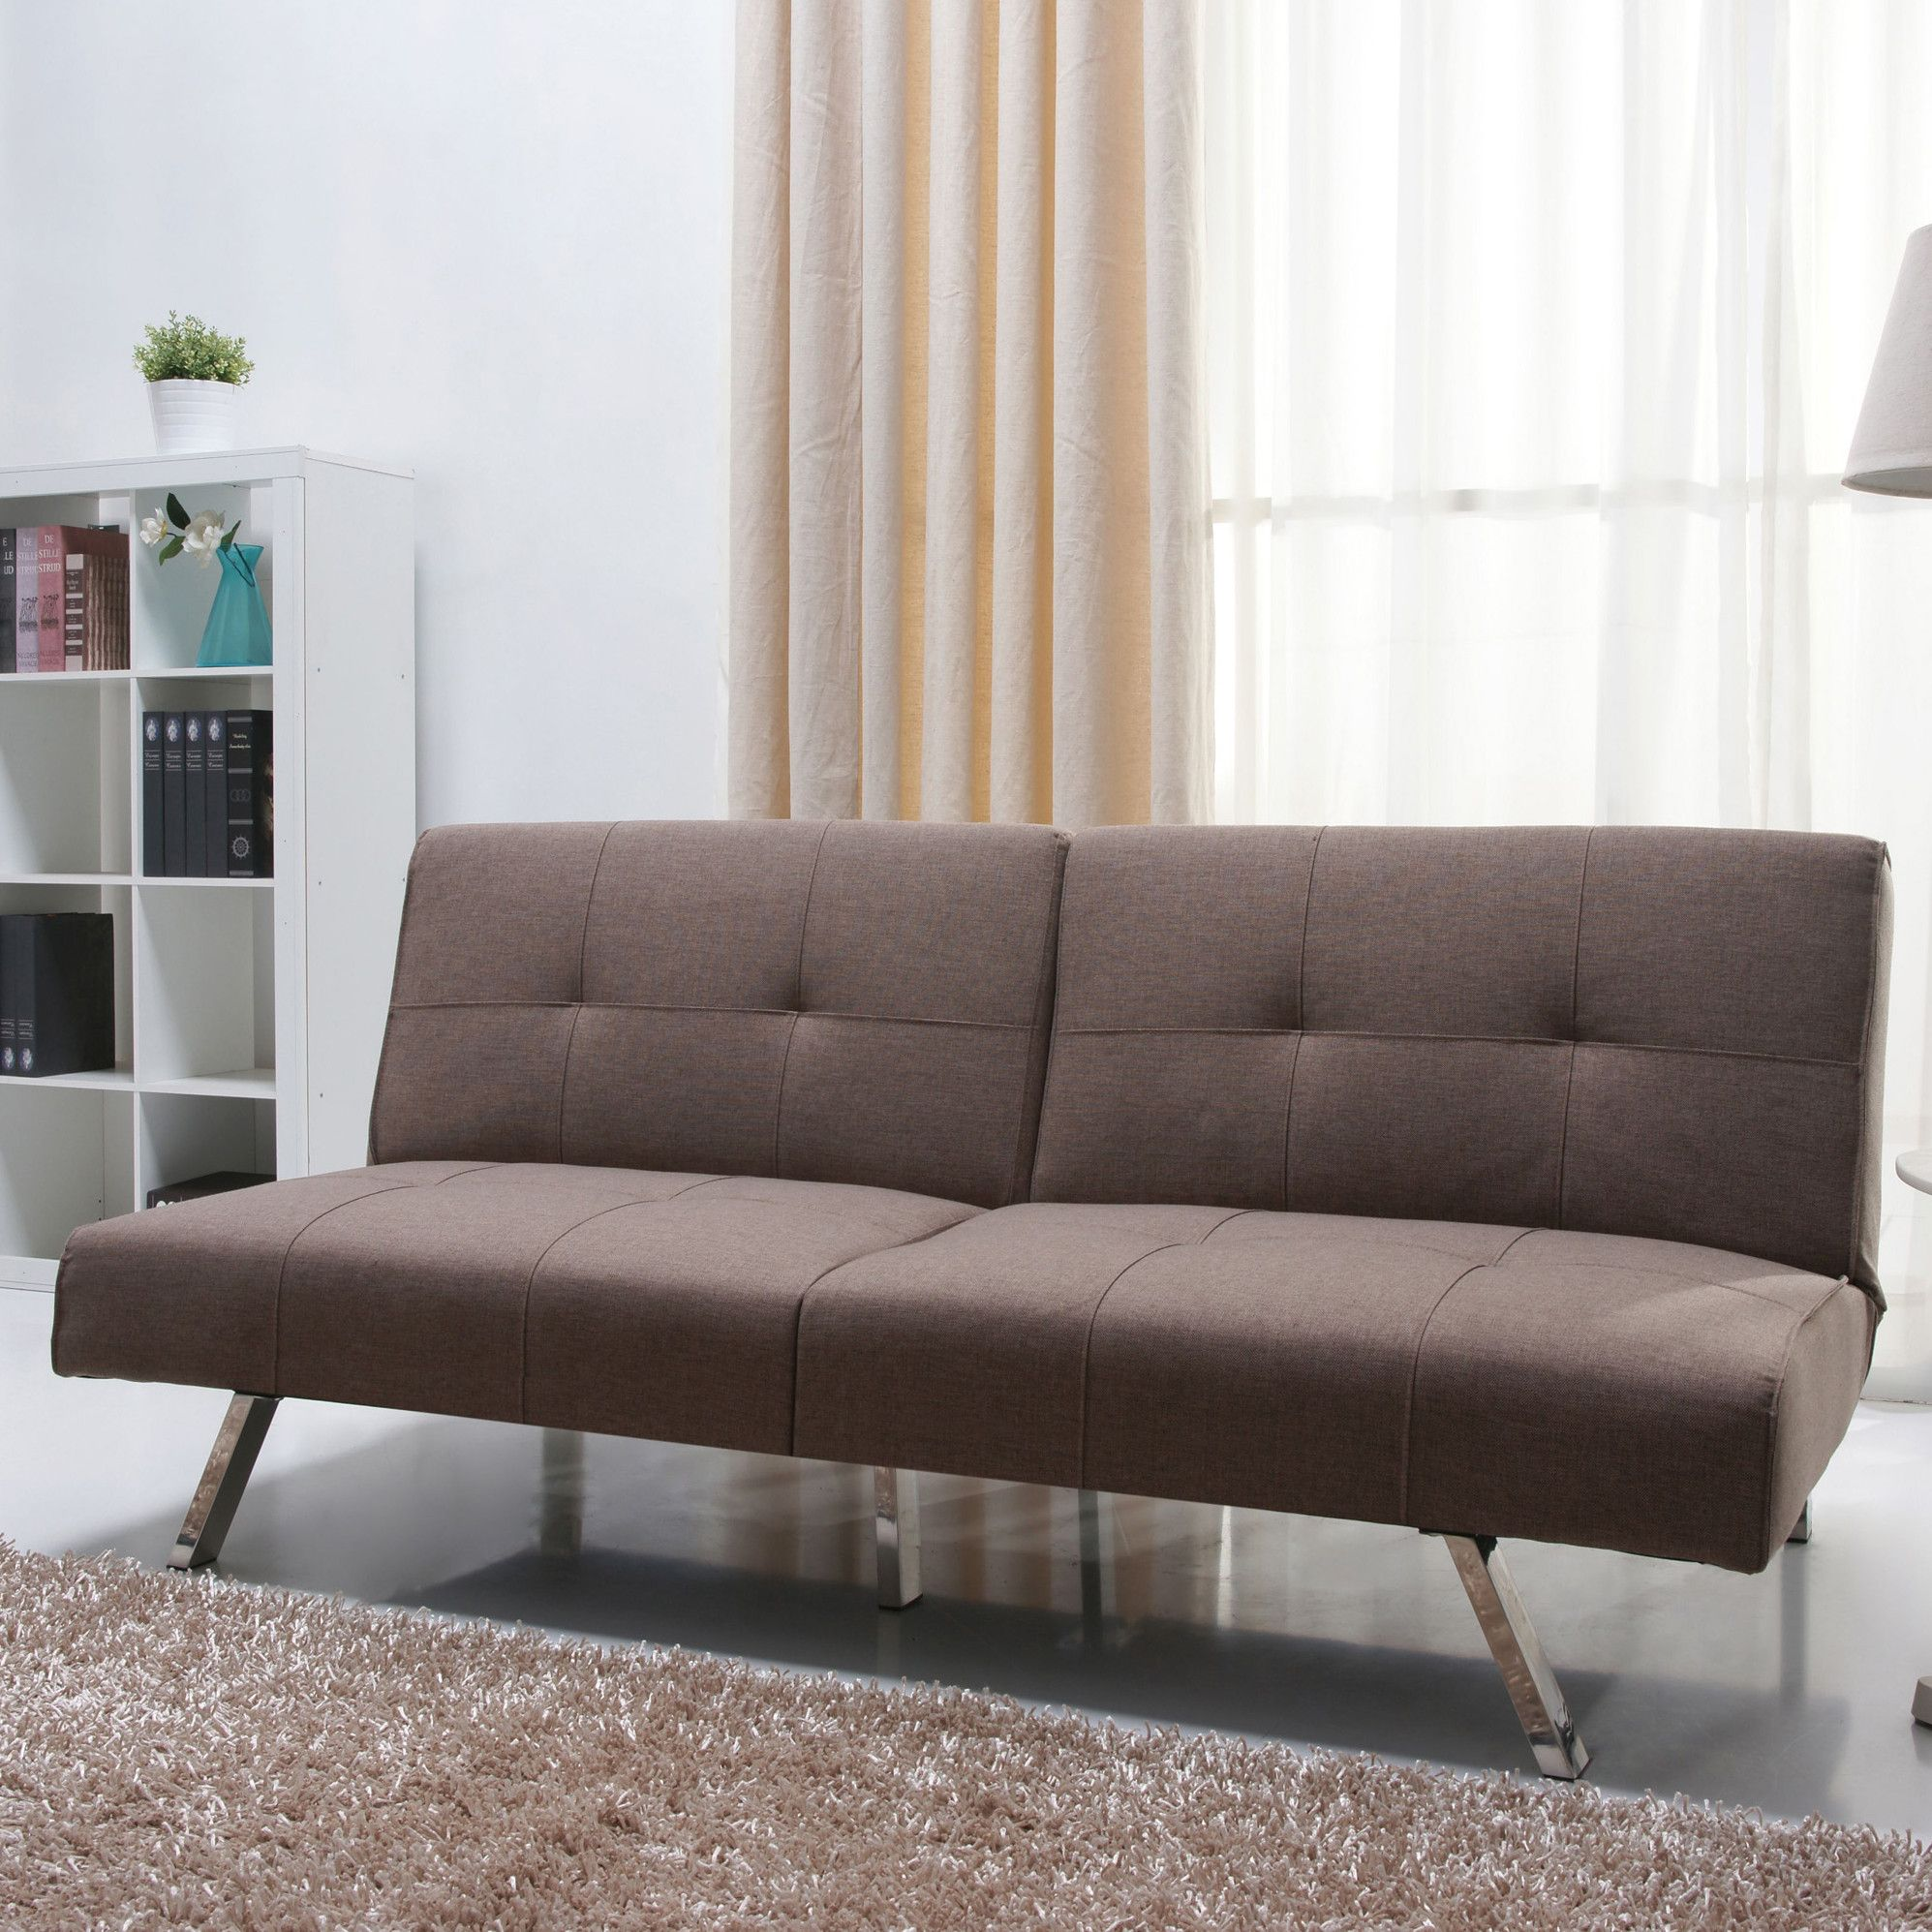 Image of: Futon Alternative Long